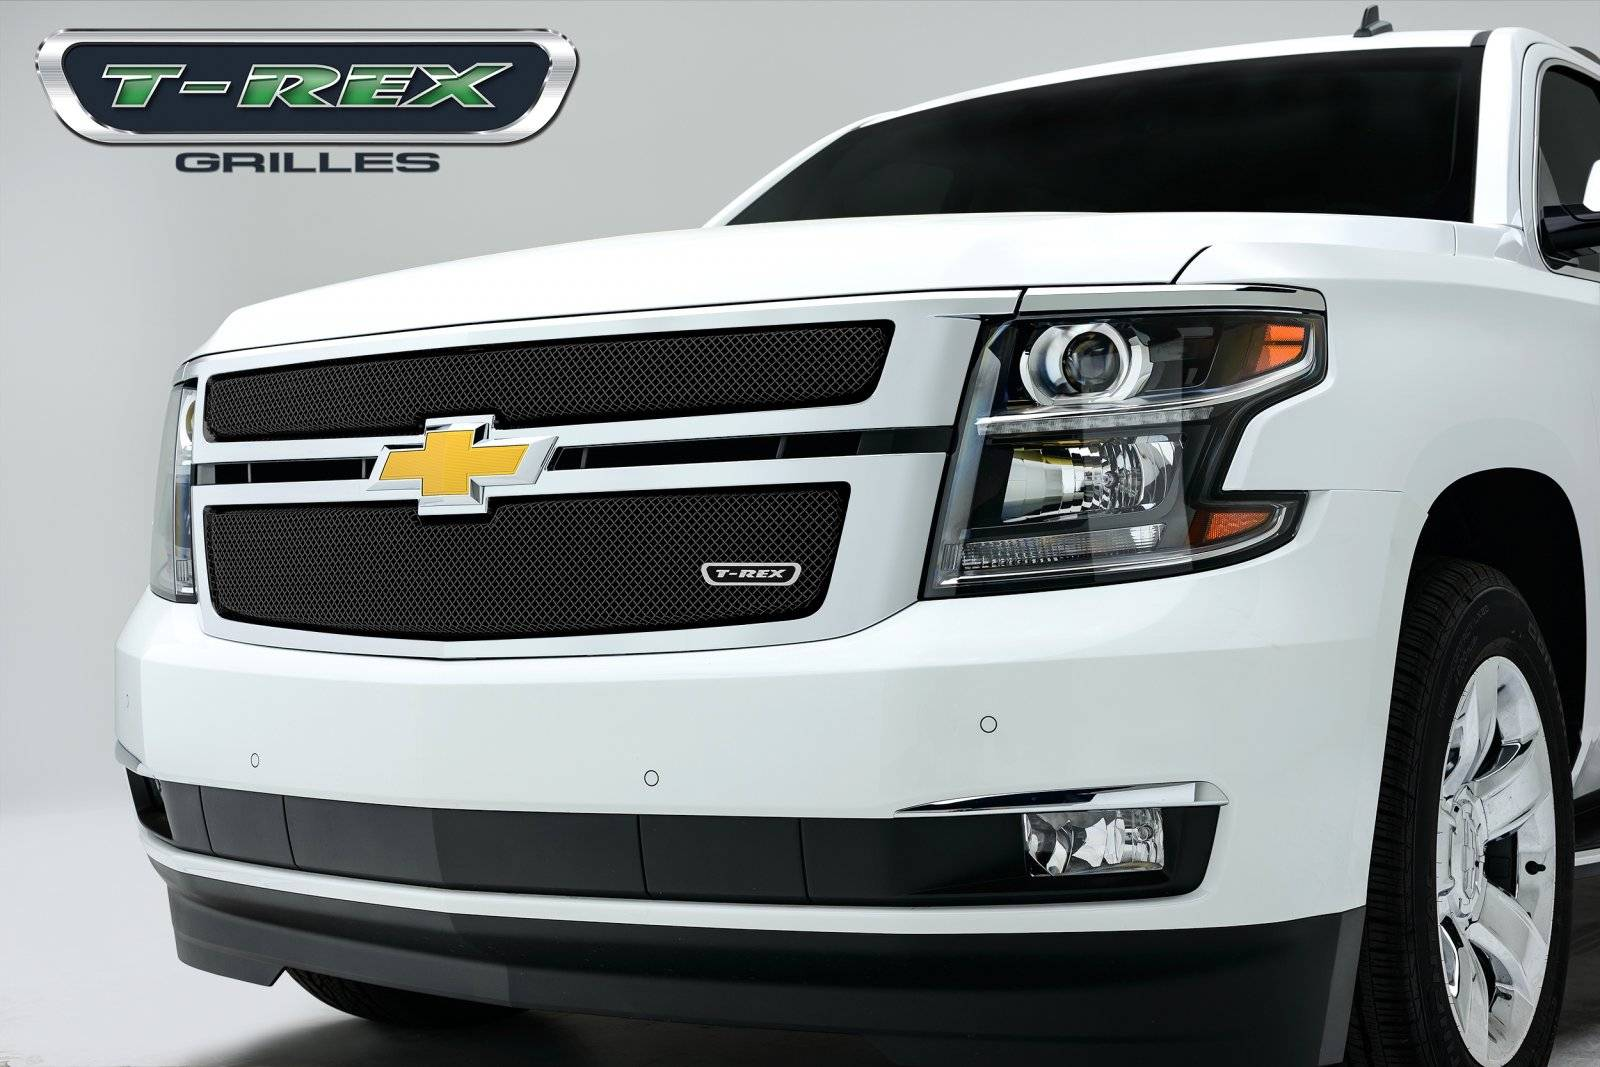 T-REX Grilles - Chevrolet Suburban, Tahoe Sport Series Formed Mesh Grille - ALL Black Powdercoat - 2 Pc - Pt # 46055